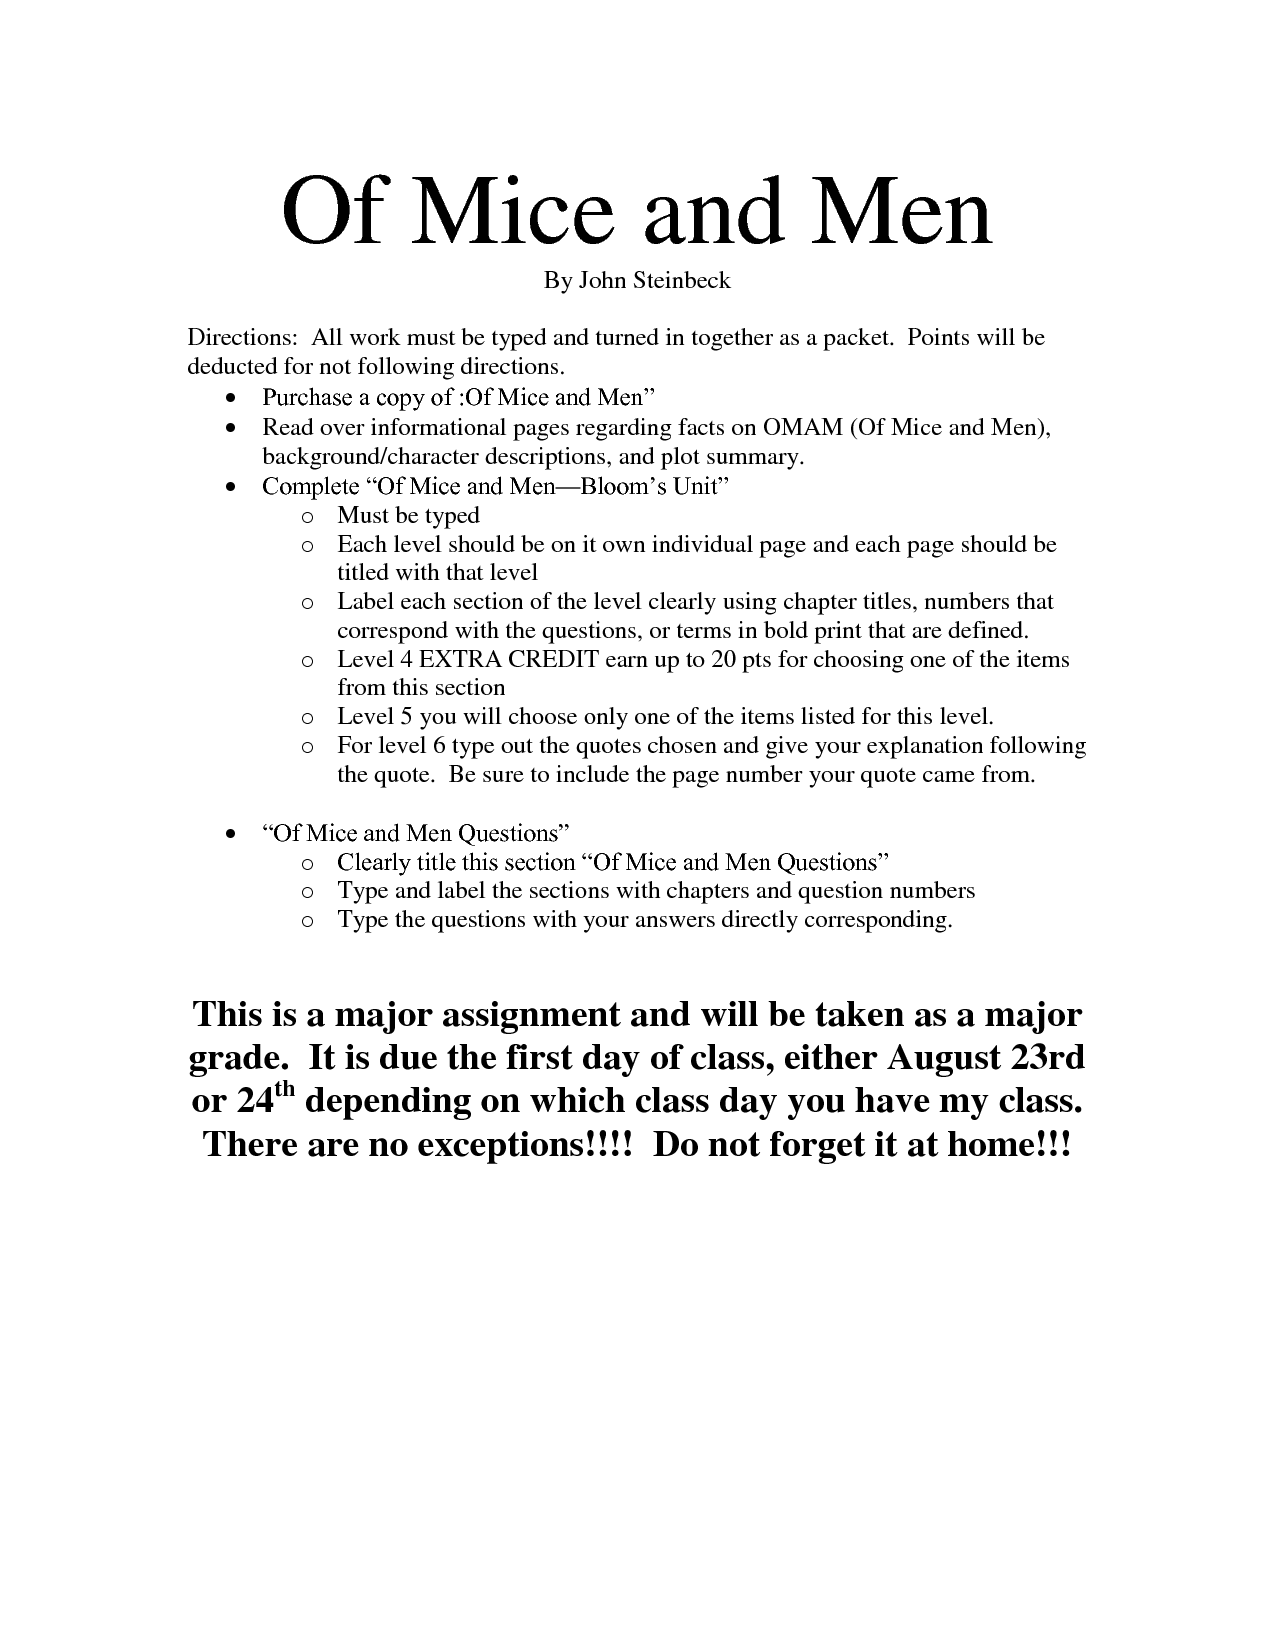 of mice and men quotations Of mice and men: novel summary: chapter 5, free study guides and book notes including comprehensive chapter analysis, complete summary analysis, author biography information, character profiles, theme analysis, metaphor analysis, and top ten quotes on classic literature.